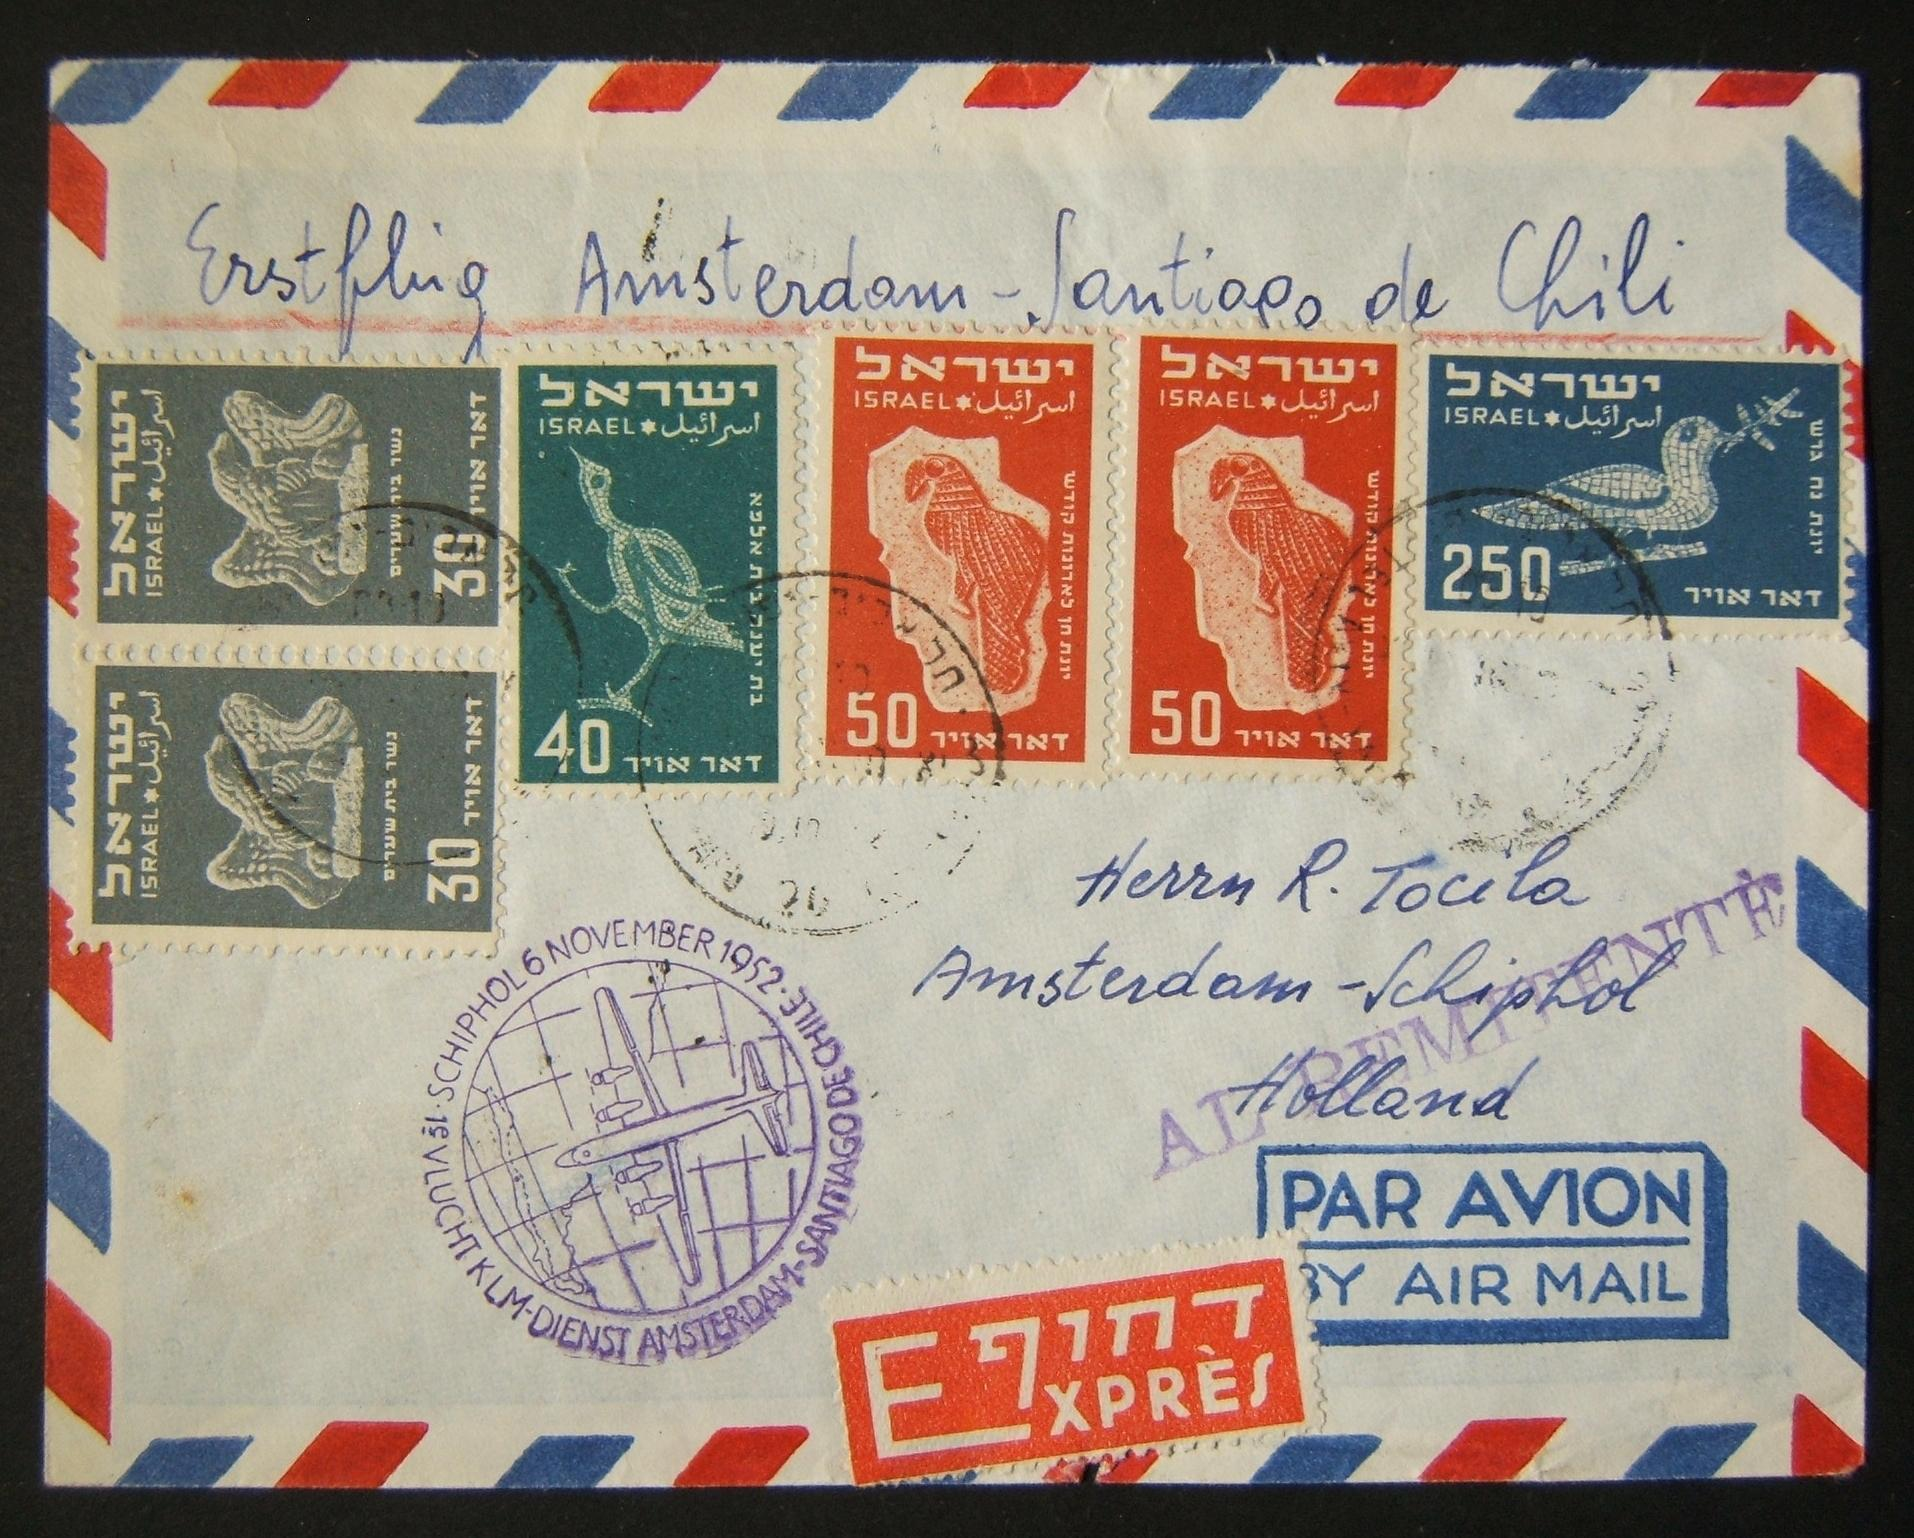 30-10-1952 1st KLM Amsterdam-Santiago de Chile flight express a/m cv ex TLV to AMSTERDAM but actually flown on to CHILE probably by addressee, franked 450pr at FA-3a period rate to